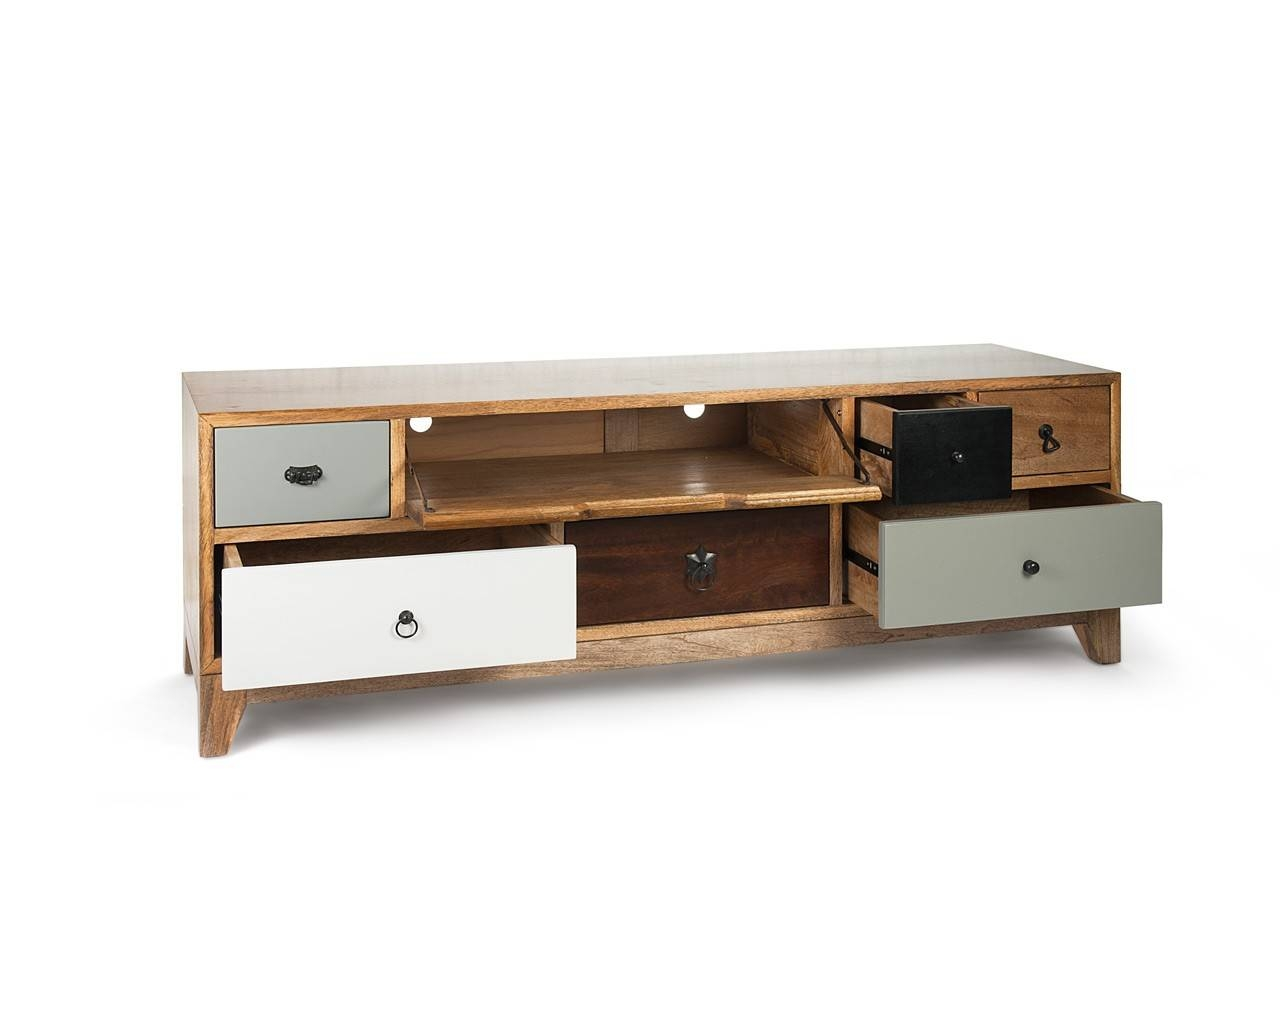 Artisan Tv Stand - Mango Wood Television Stand - Puji Furniture inside Mango Tv Unit (Image 2 of 15)